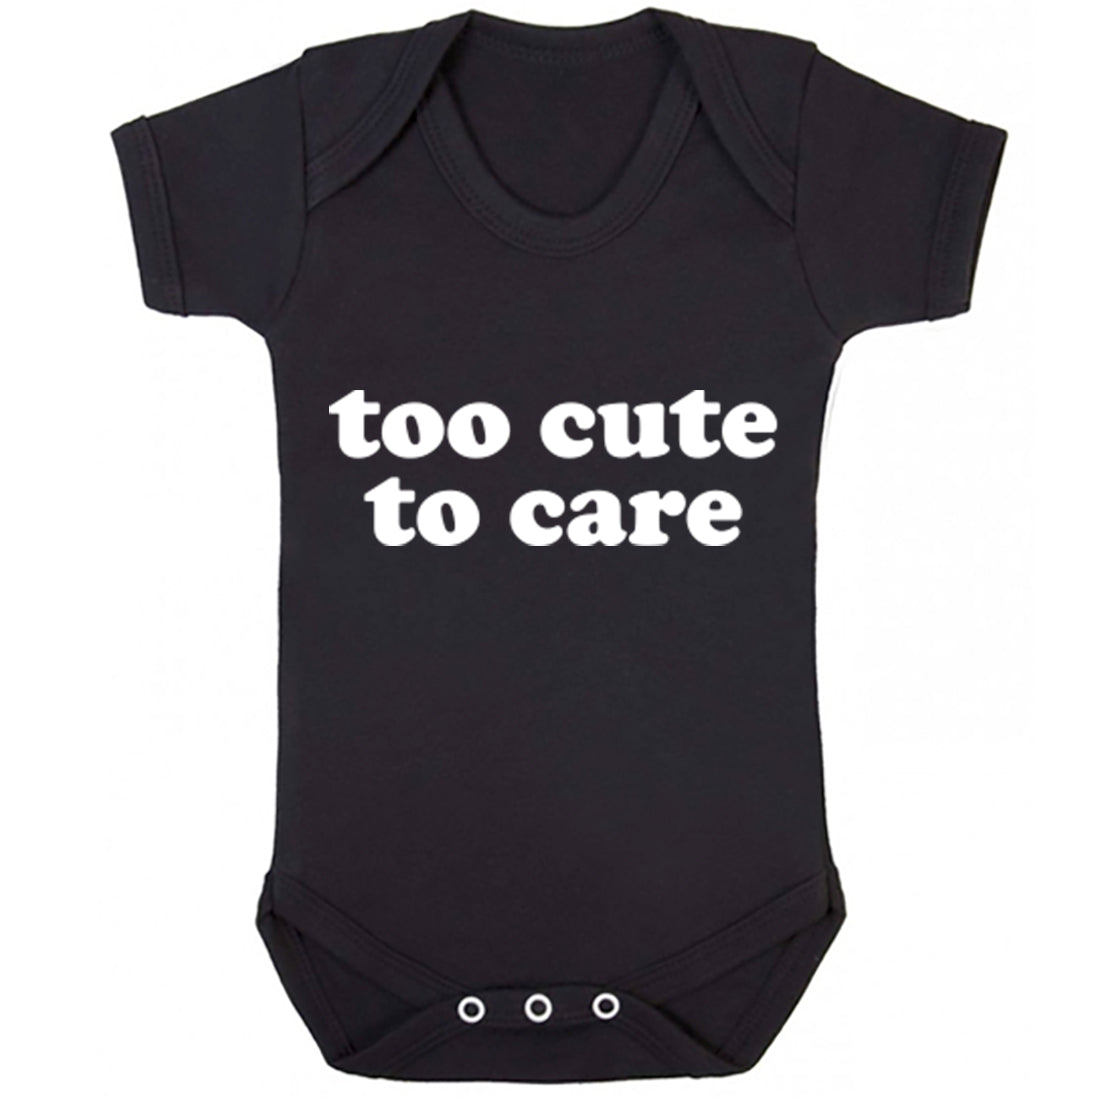 Too Cute To Care Baby Vest K1870 - Illustrated Identity Ltd.